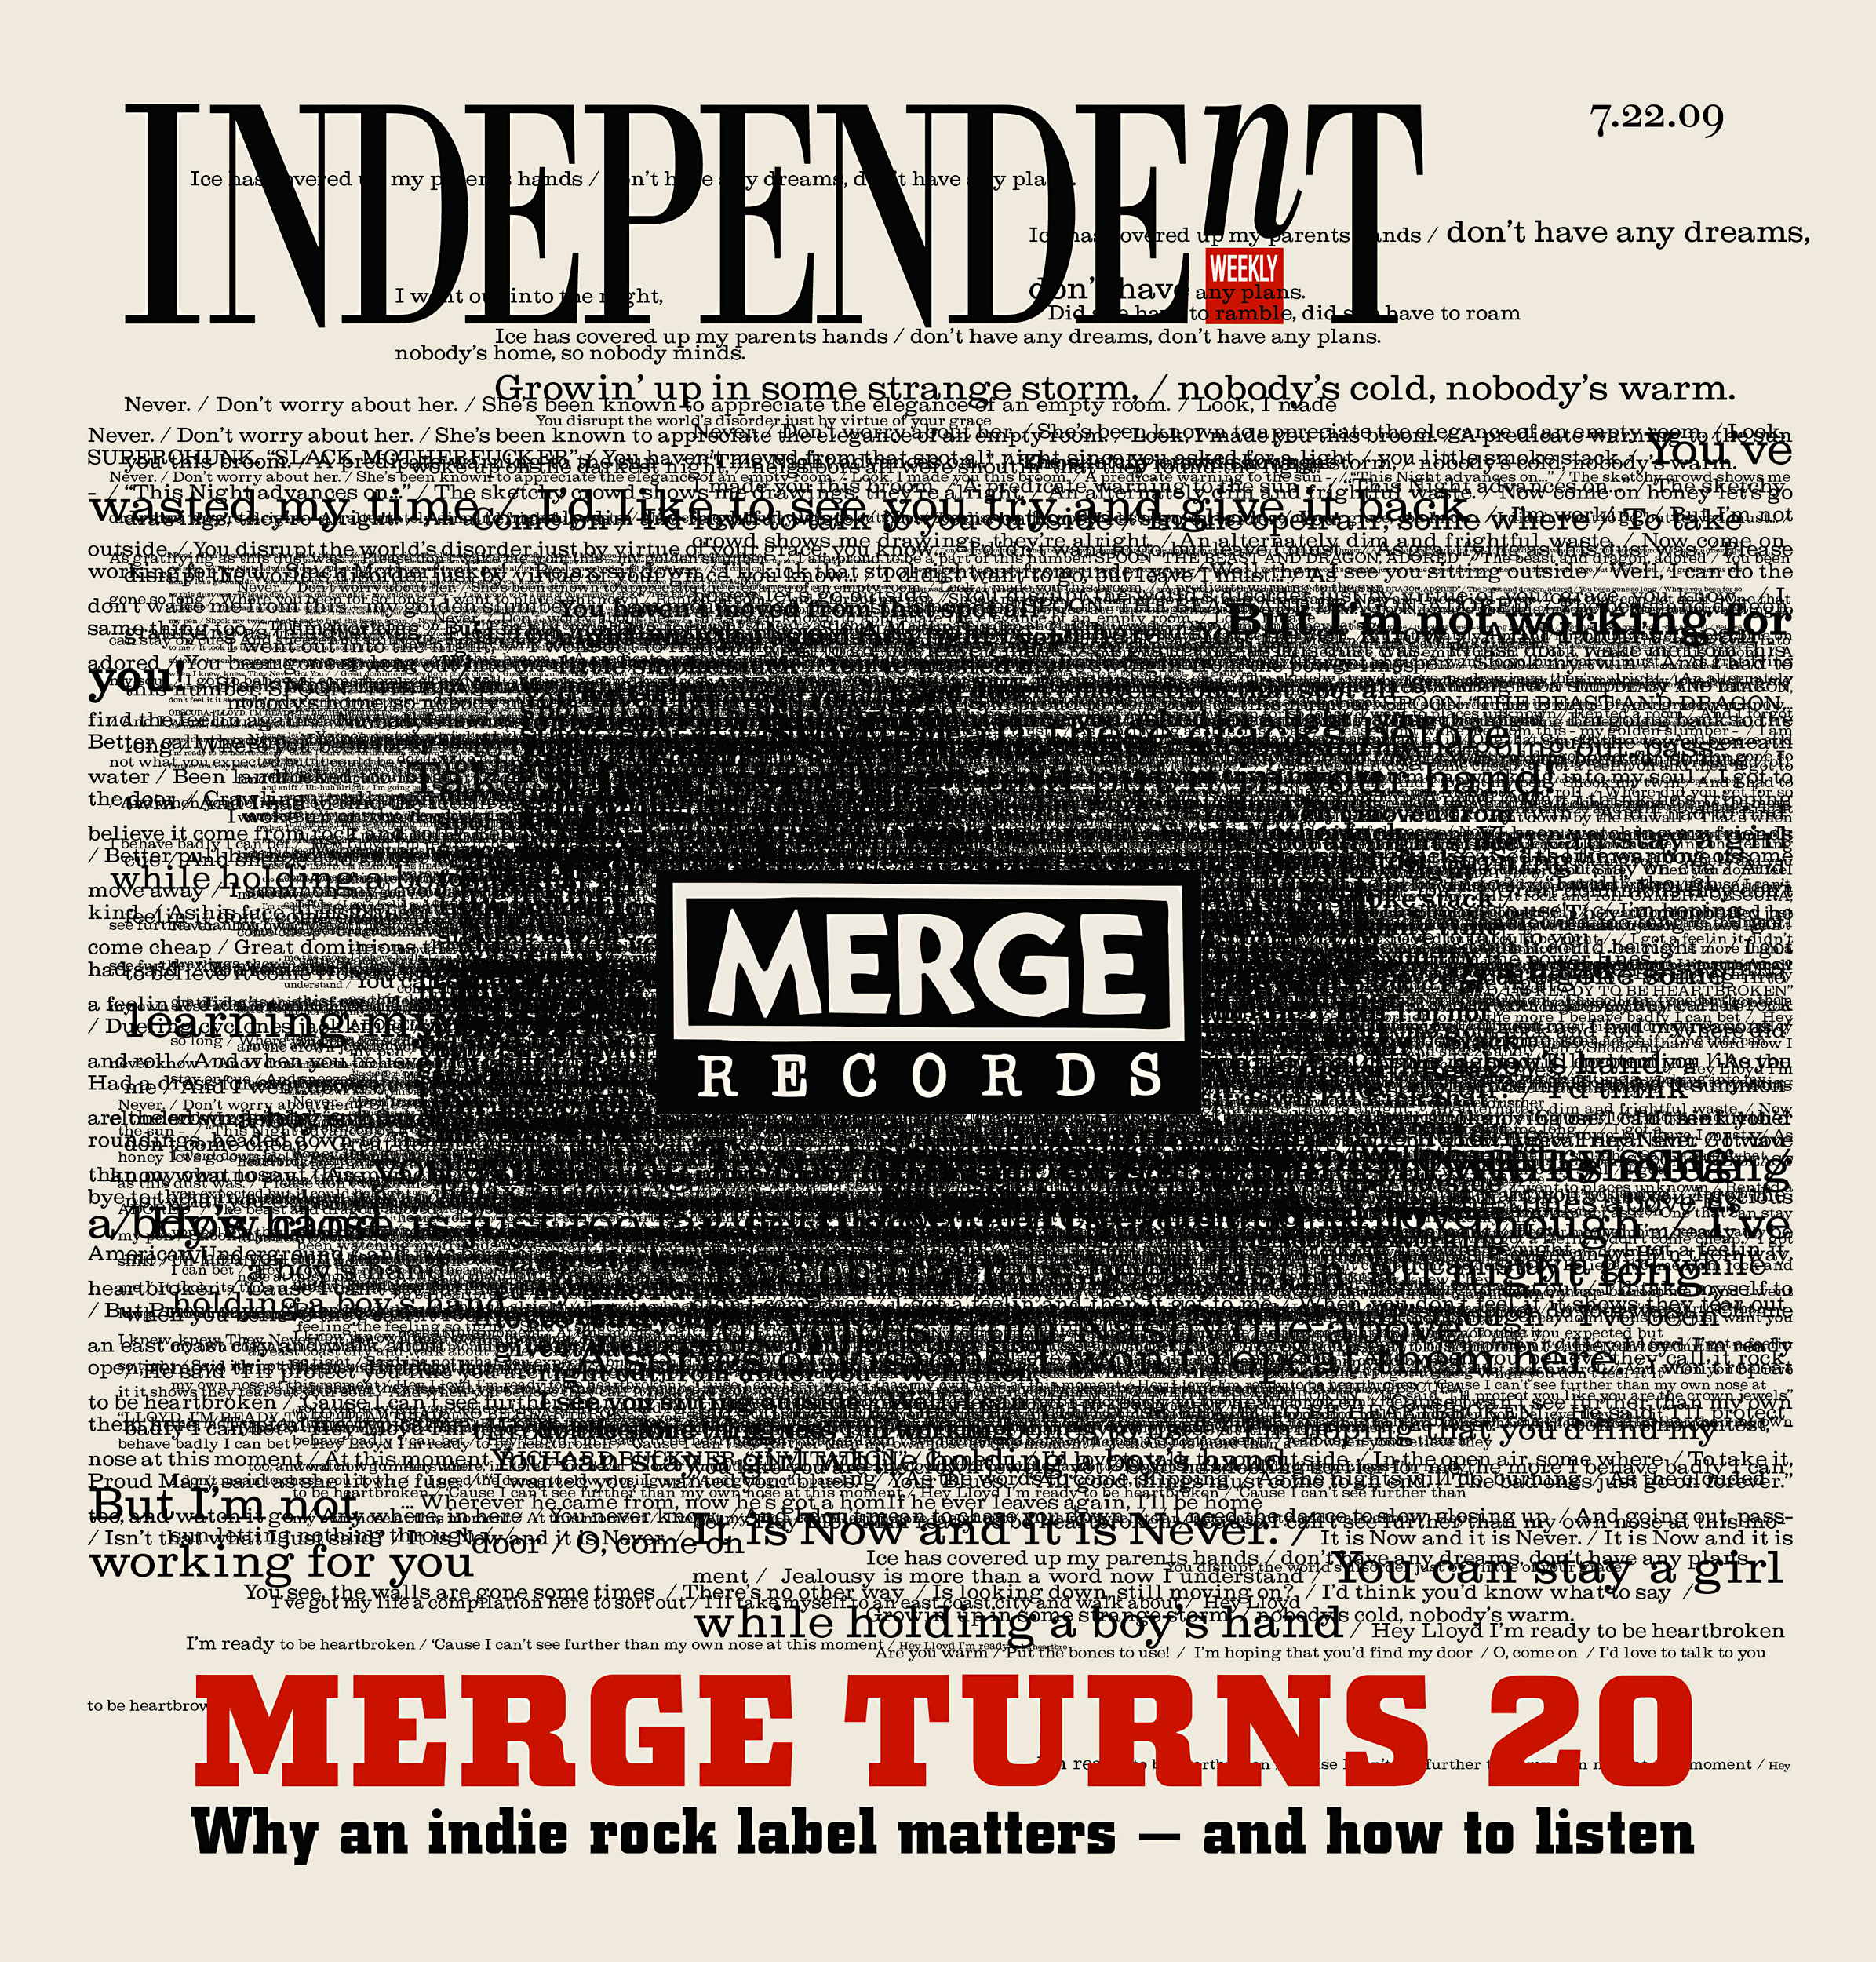 Cover for newsweekly featured a magnetic field of lyrics from various songs that Merge recording artists have released over the years.